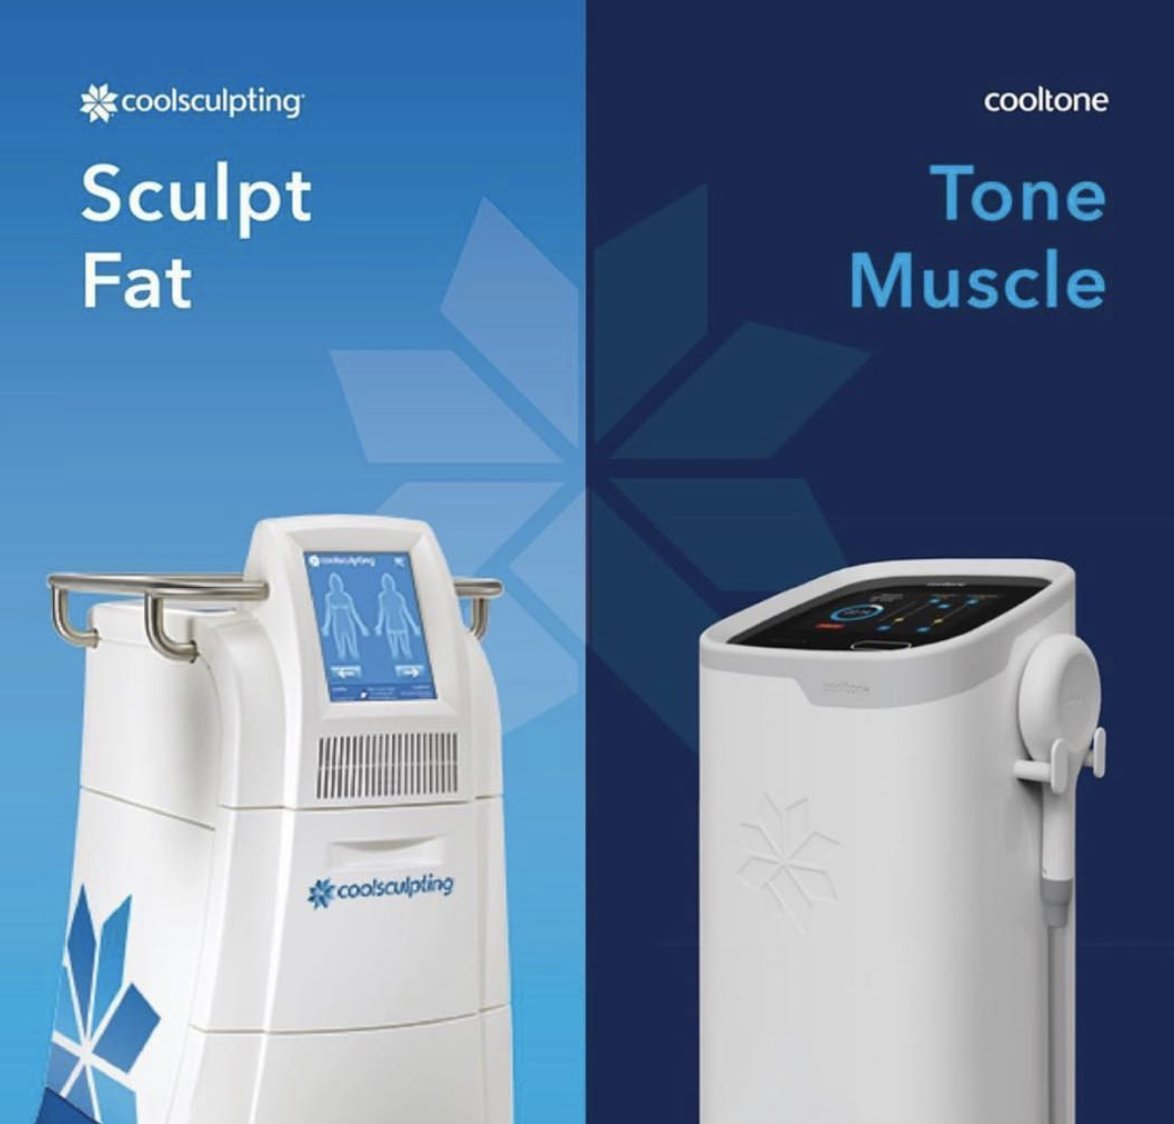 #FreezeTheFat and Tone your muscles with @CoolSculpting +#CoolTone in the Marina. Save an additional $800 as a gift from #Allergan.   Limited time offer, call (310)827-2653 today! #DrGrantStevens #MarinaDelRey #MarinaMedSpapic.twitter.com/es14PciVUK